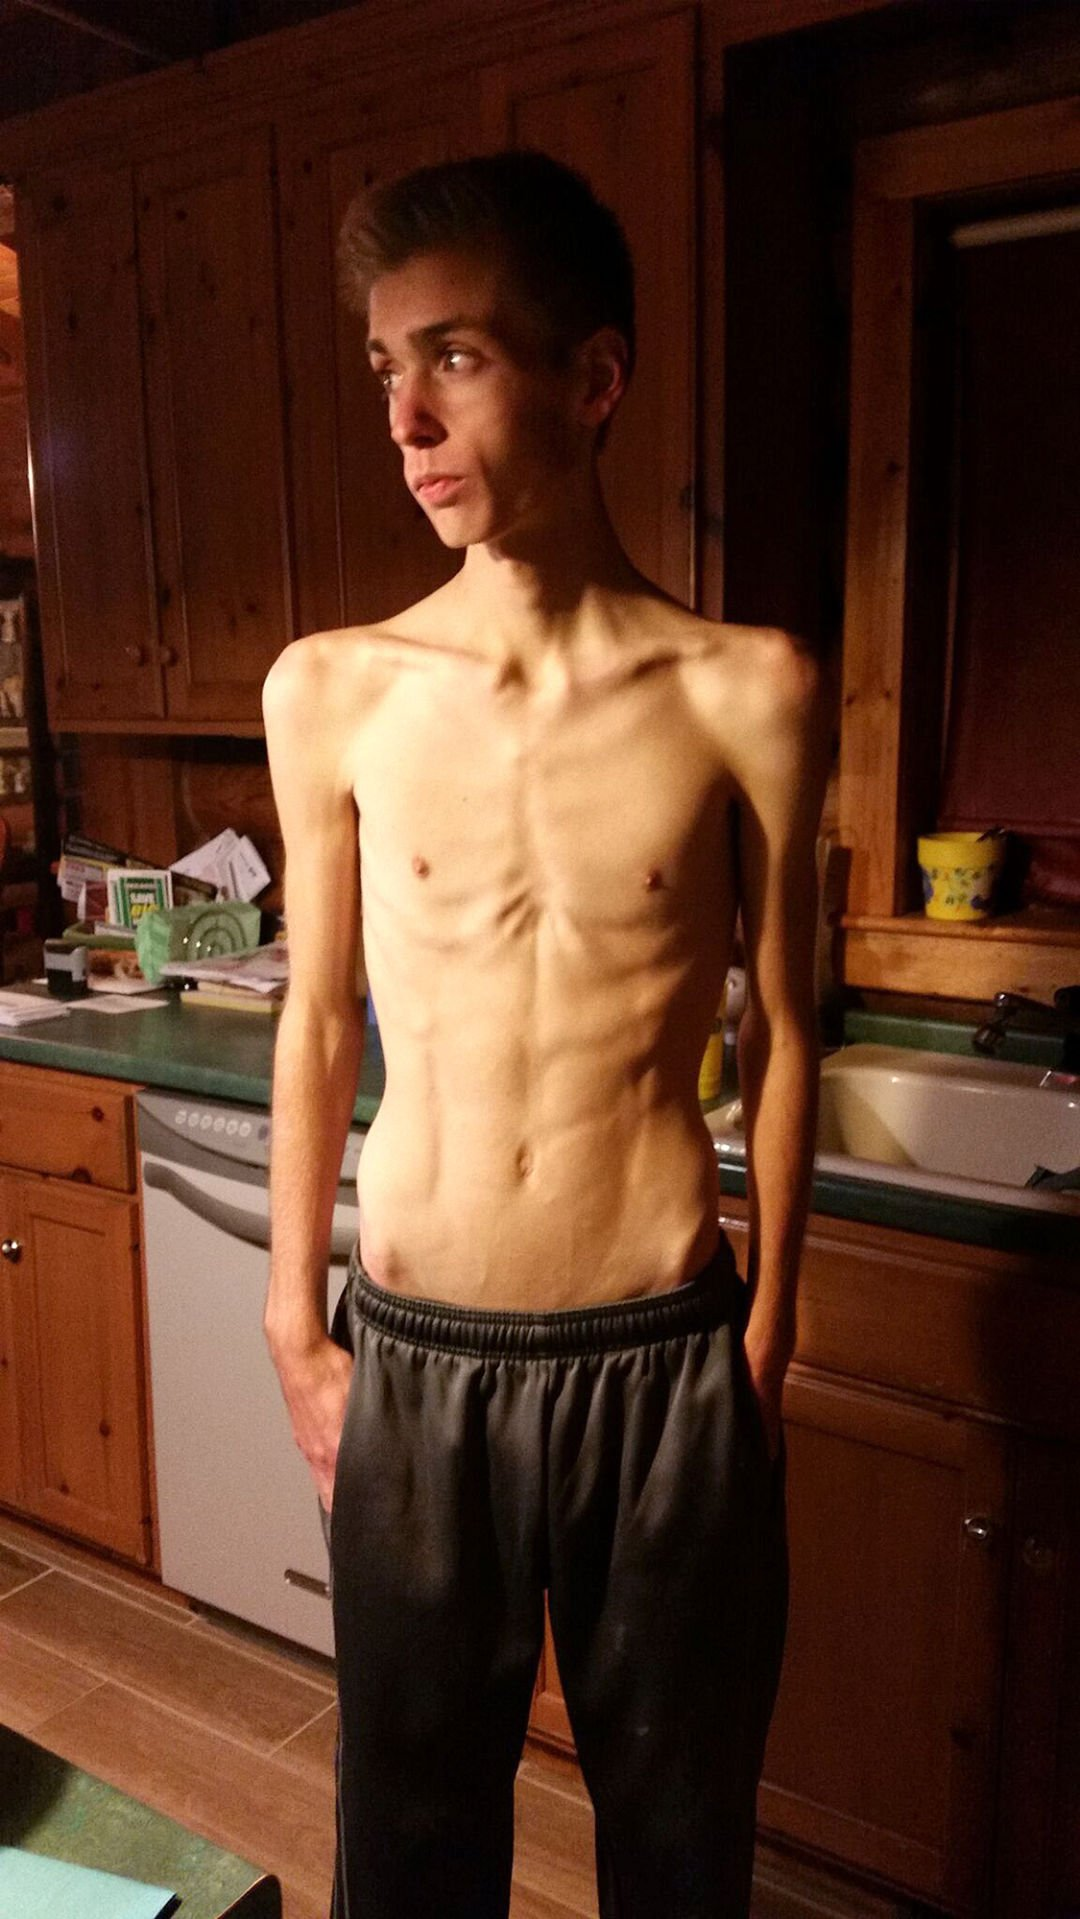 Tanner's tribulations: A young man's battle with anorexia nervosa